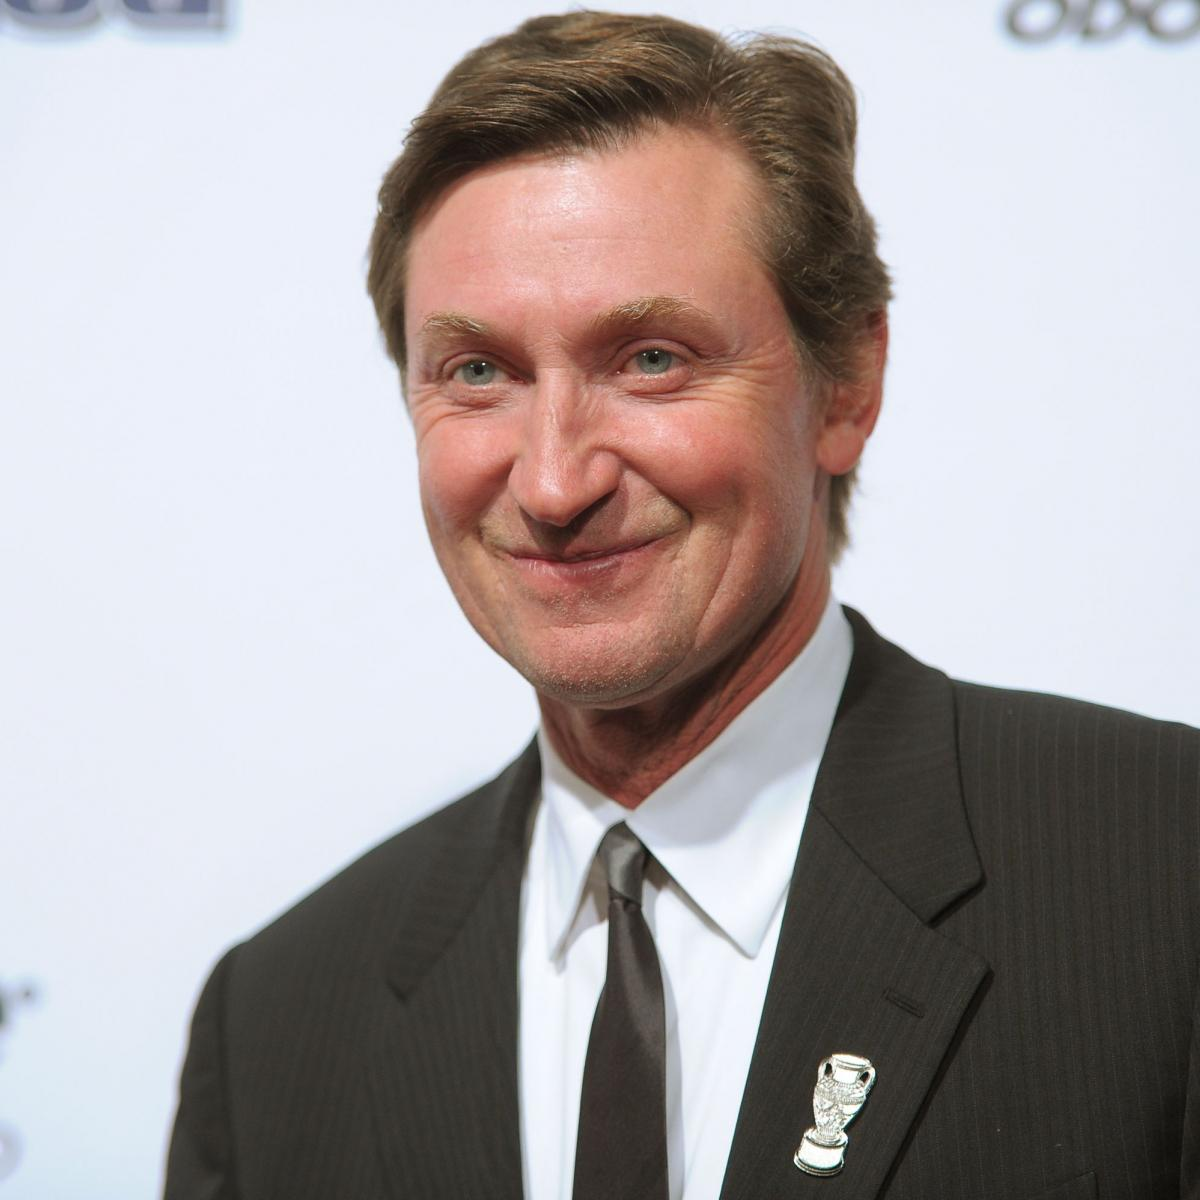 10 Incredible Facts About Wayne Gretzky Bleacher Report Latest News Videos And Highlights